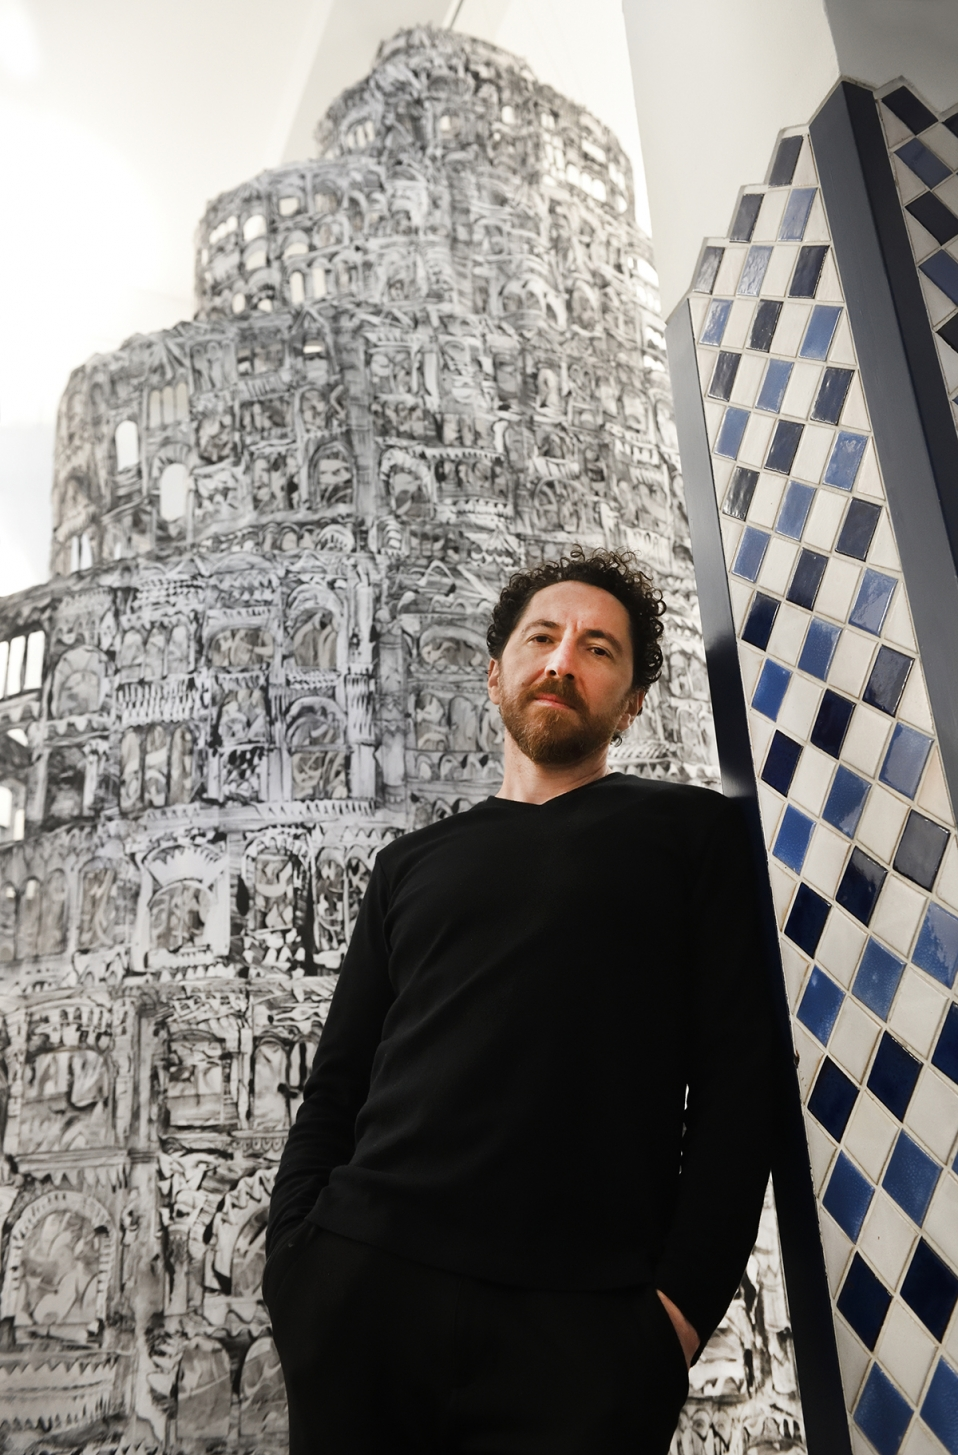 A man with a beard dressed in black stands in front of an elaborate drawing of a tower